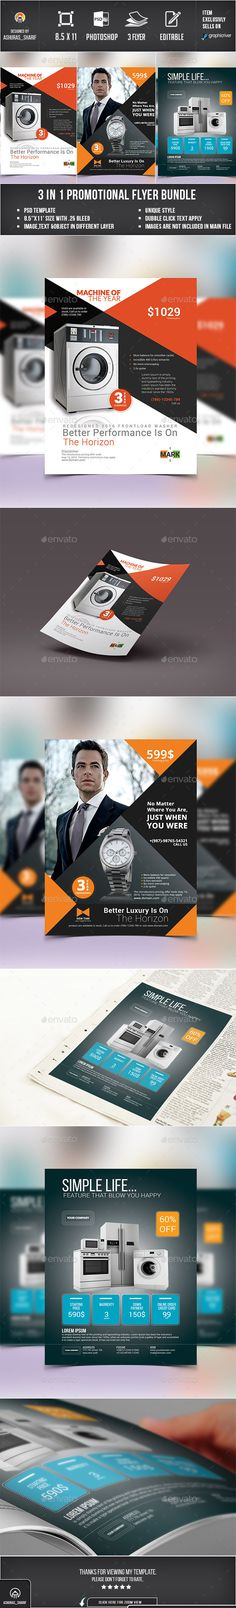 Product Promotional Flyer Bundle Template #flyertemplate Buy and  Download: http://graphicriver.net/item/product-promotional-flyer-bundle-01/12142720?ref=ksioks